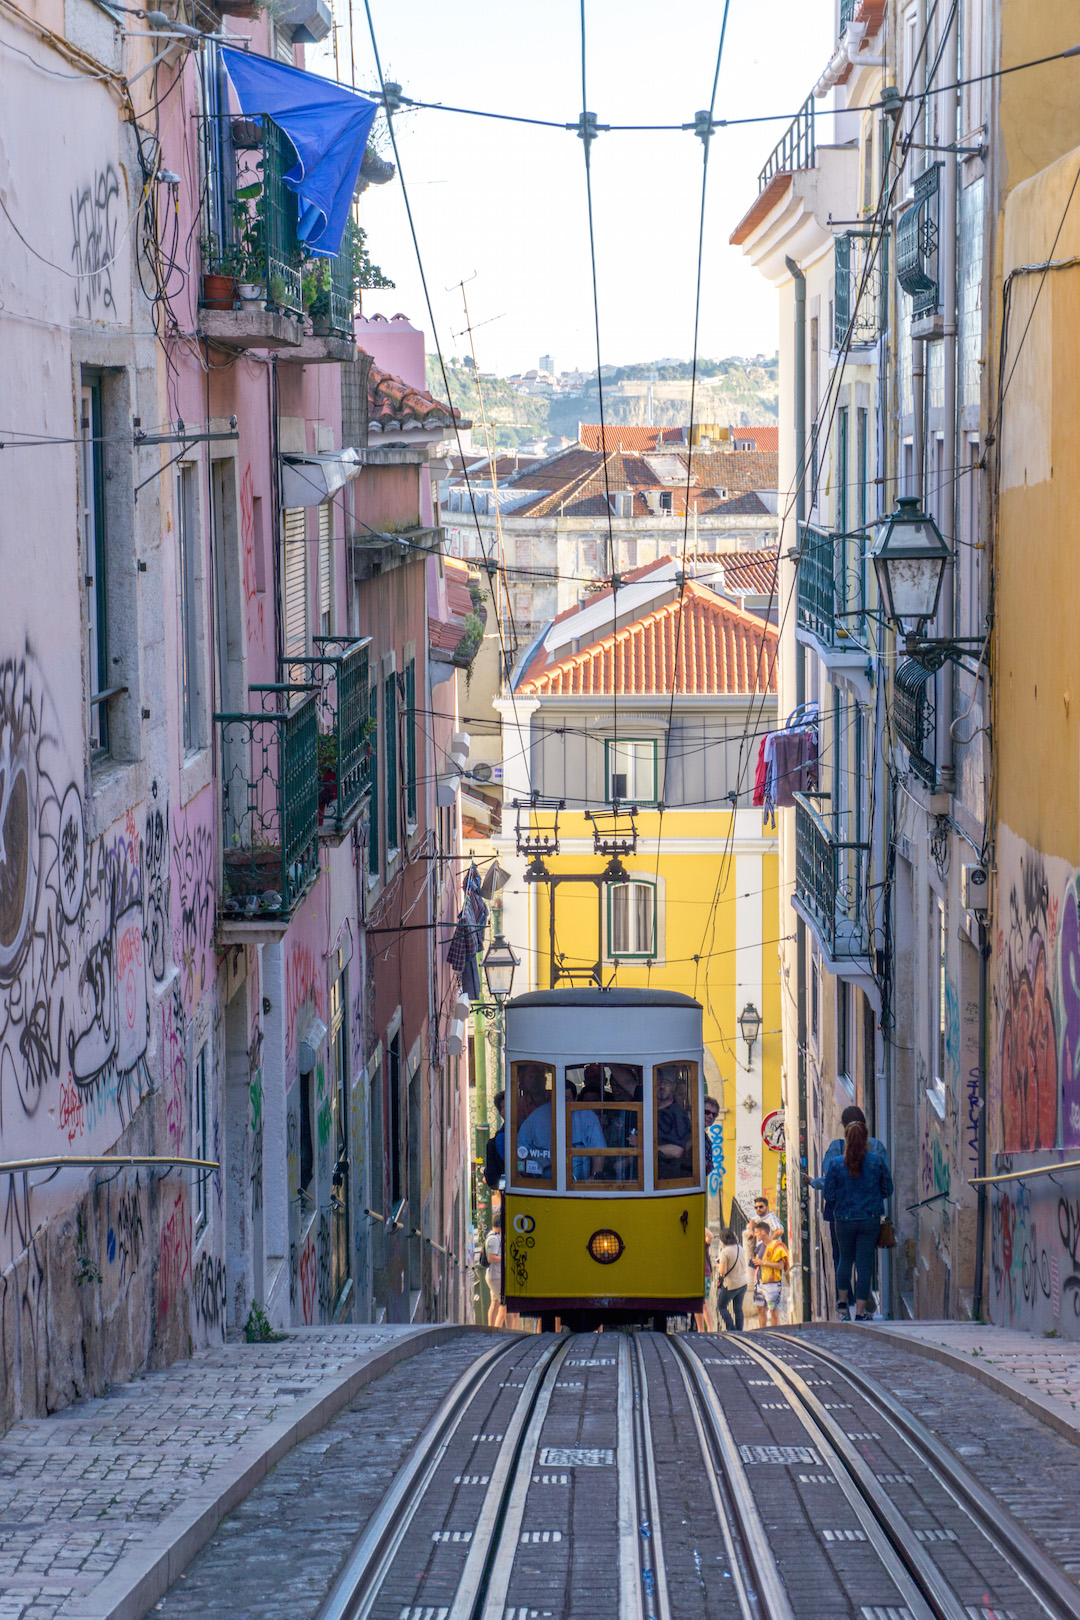 Tram in Lisbon at Elevador da Bica